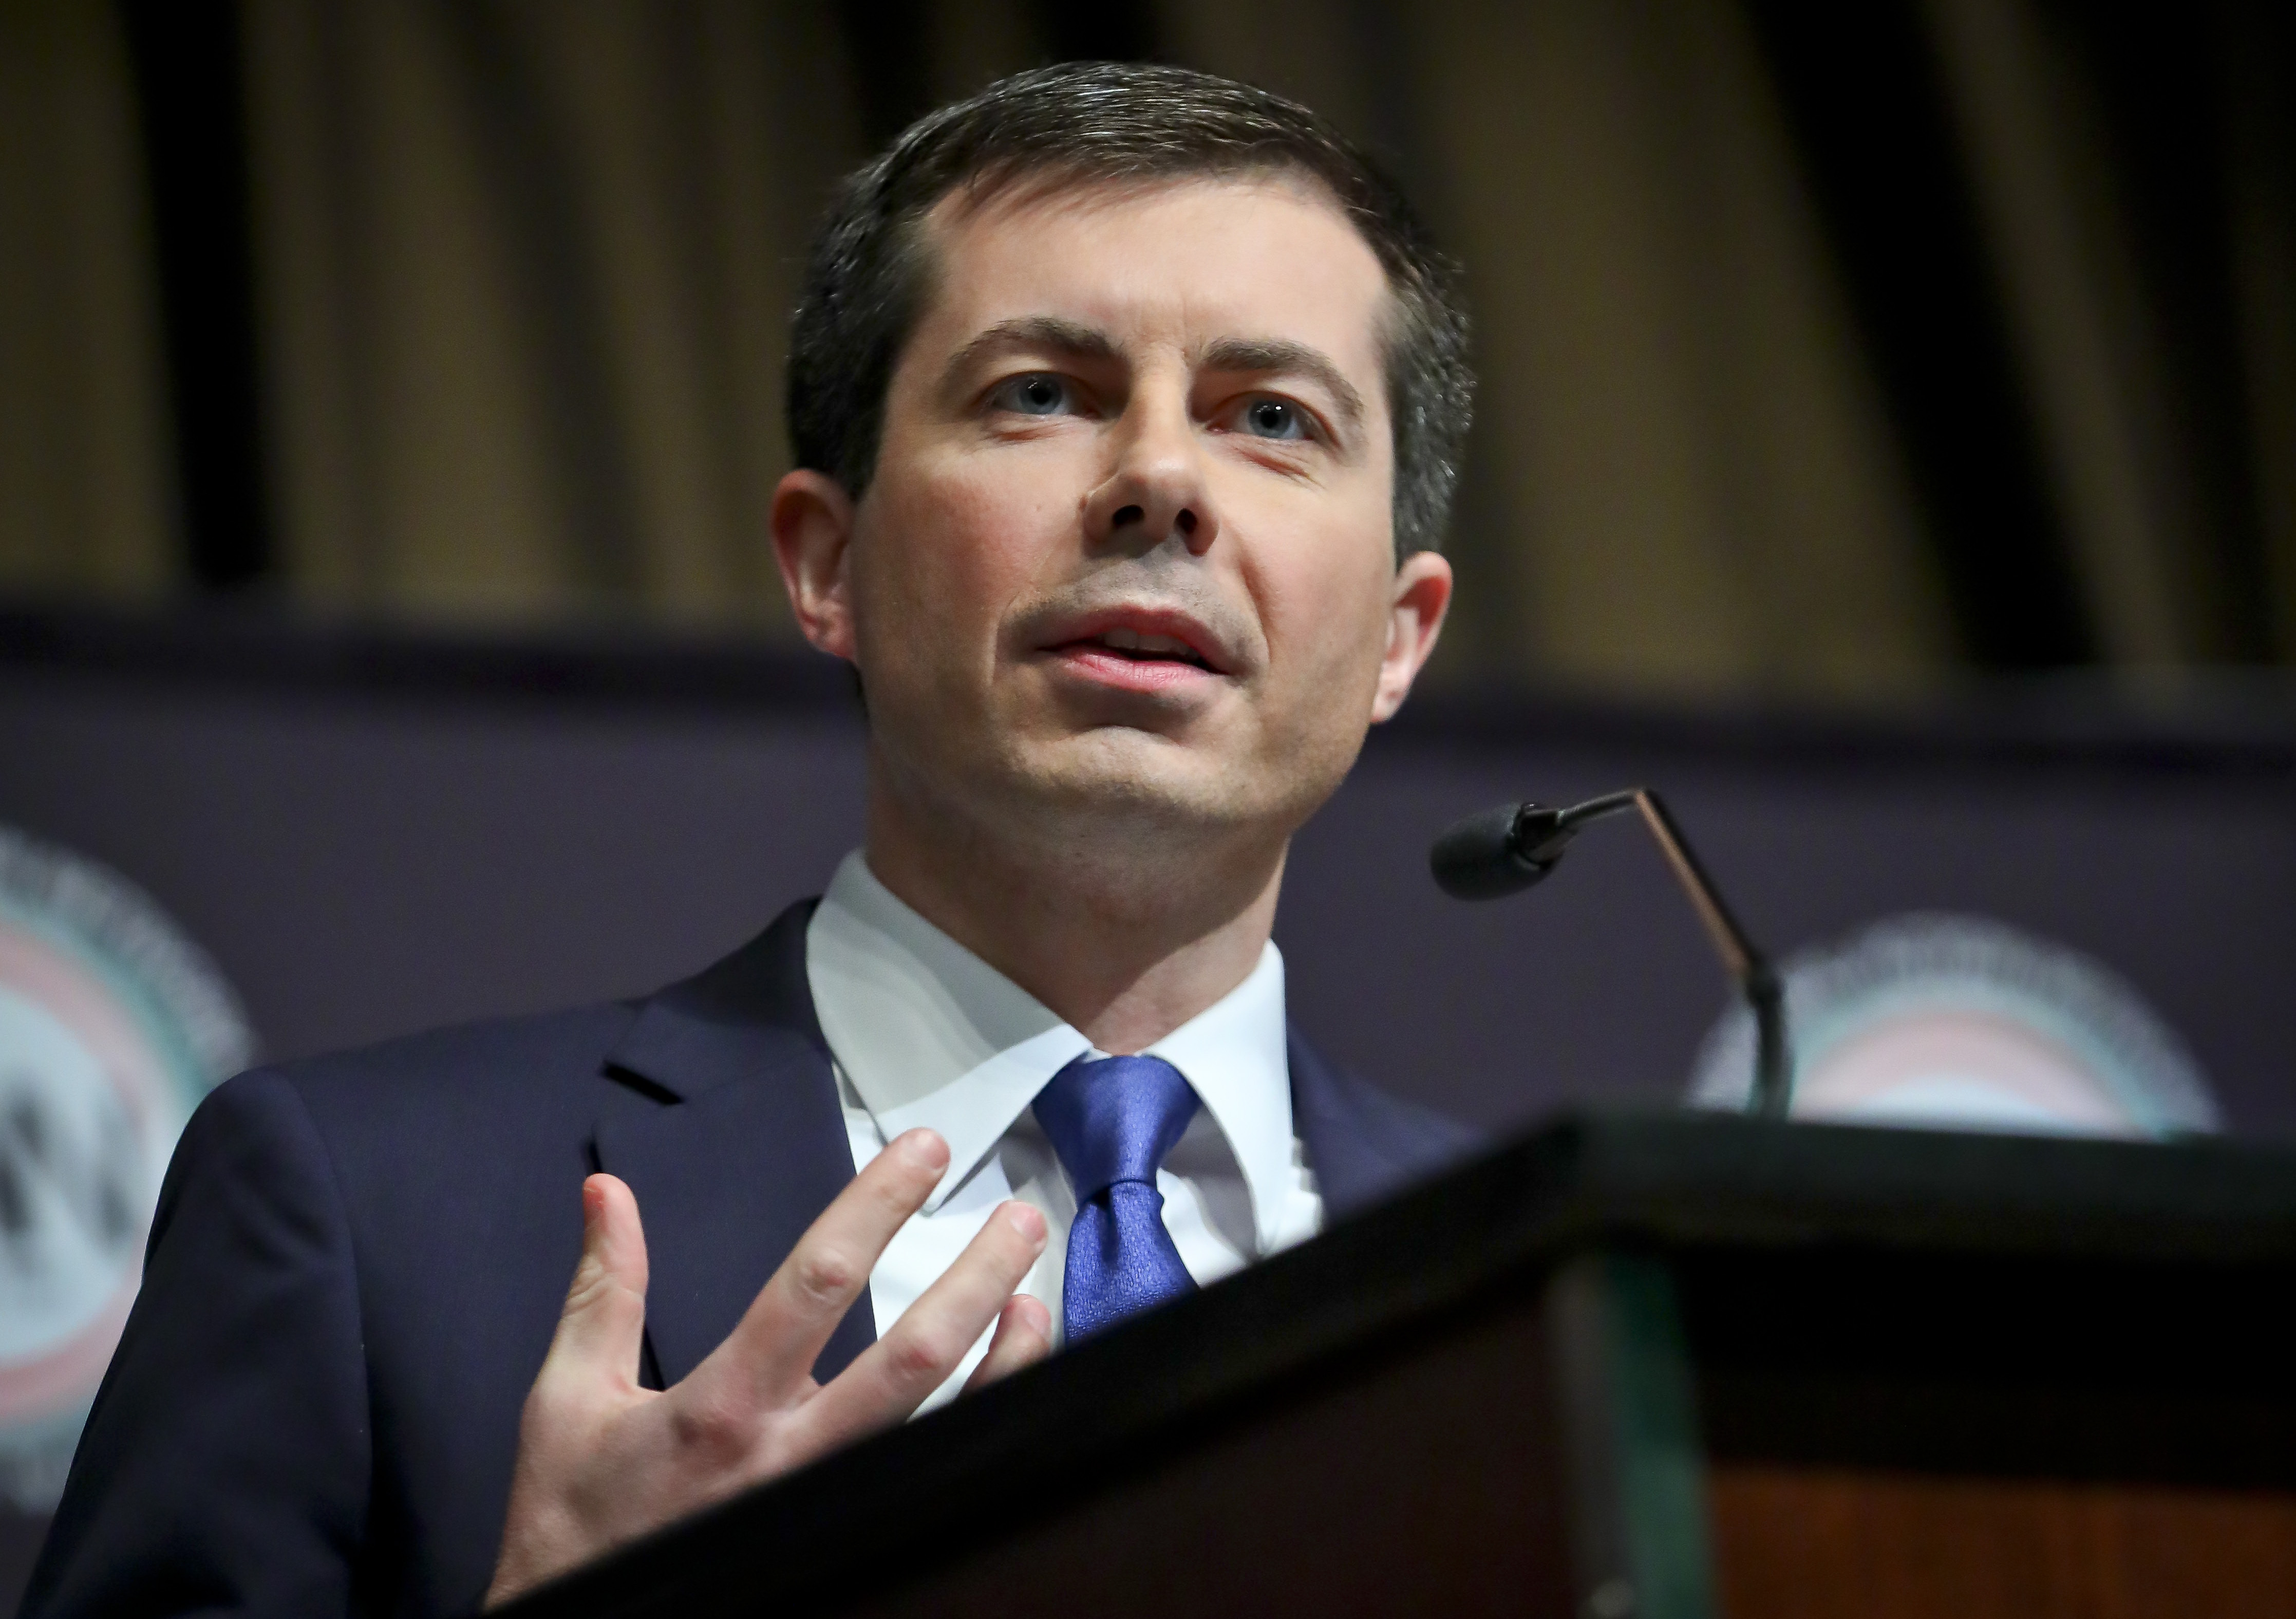 Democratic presidential candidate Pete Buttigieg, South Bend, Ind. mayor, addresses the National Action Network (NAN) convention, on April 4, 2019 in New York.